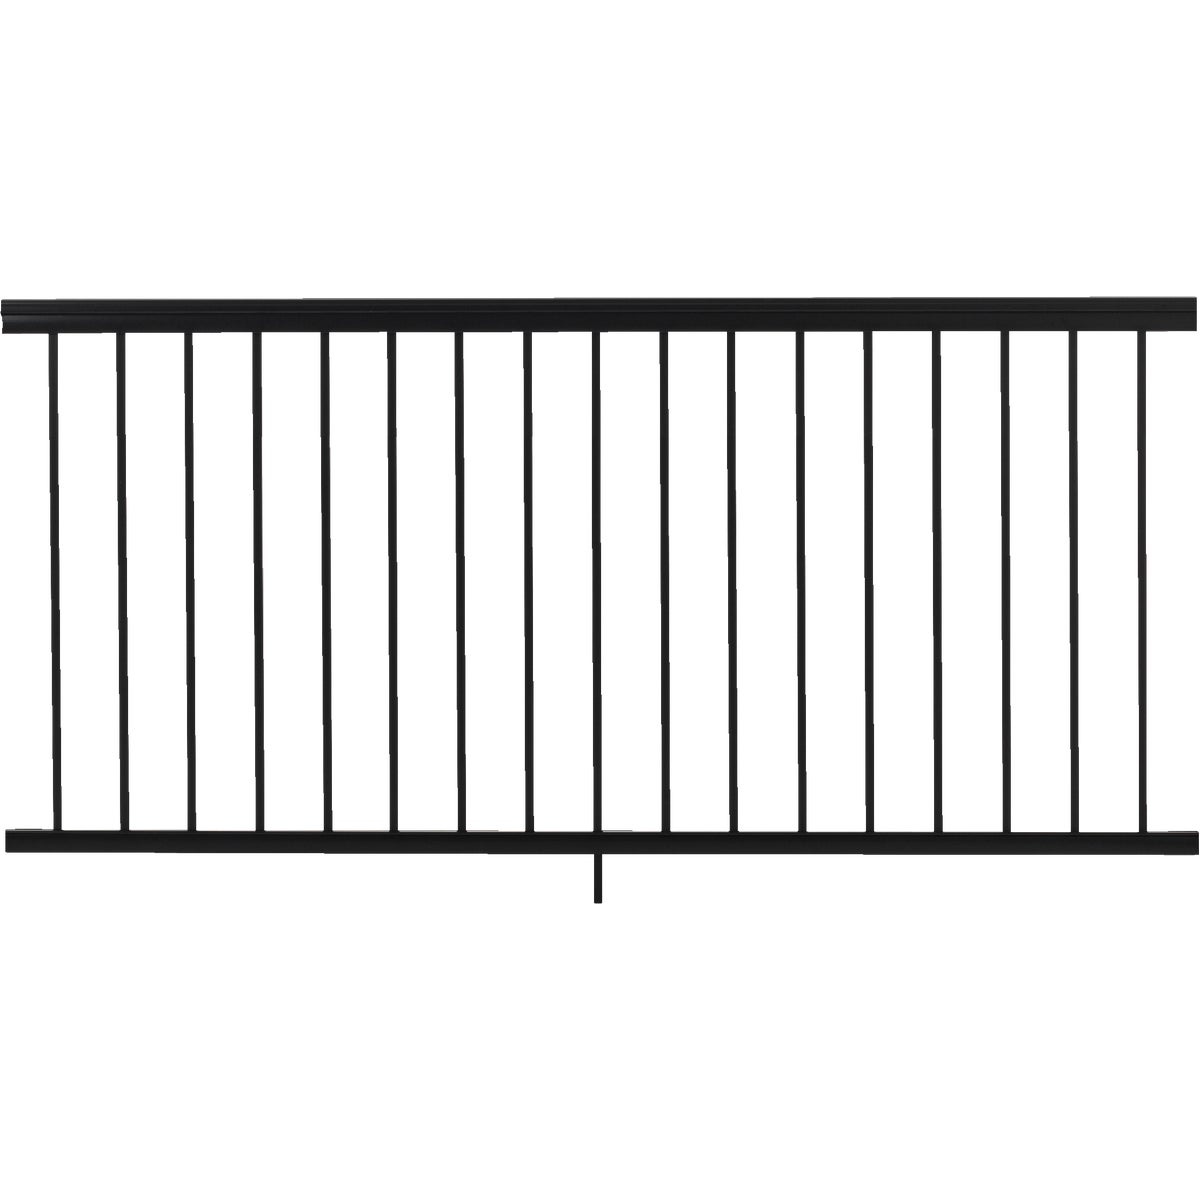 "36""X6' BLK SPINDLE RAIL - 619051B by Gilpin Inc"